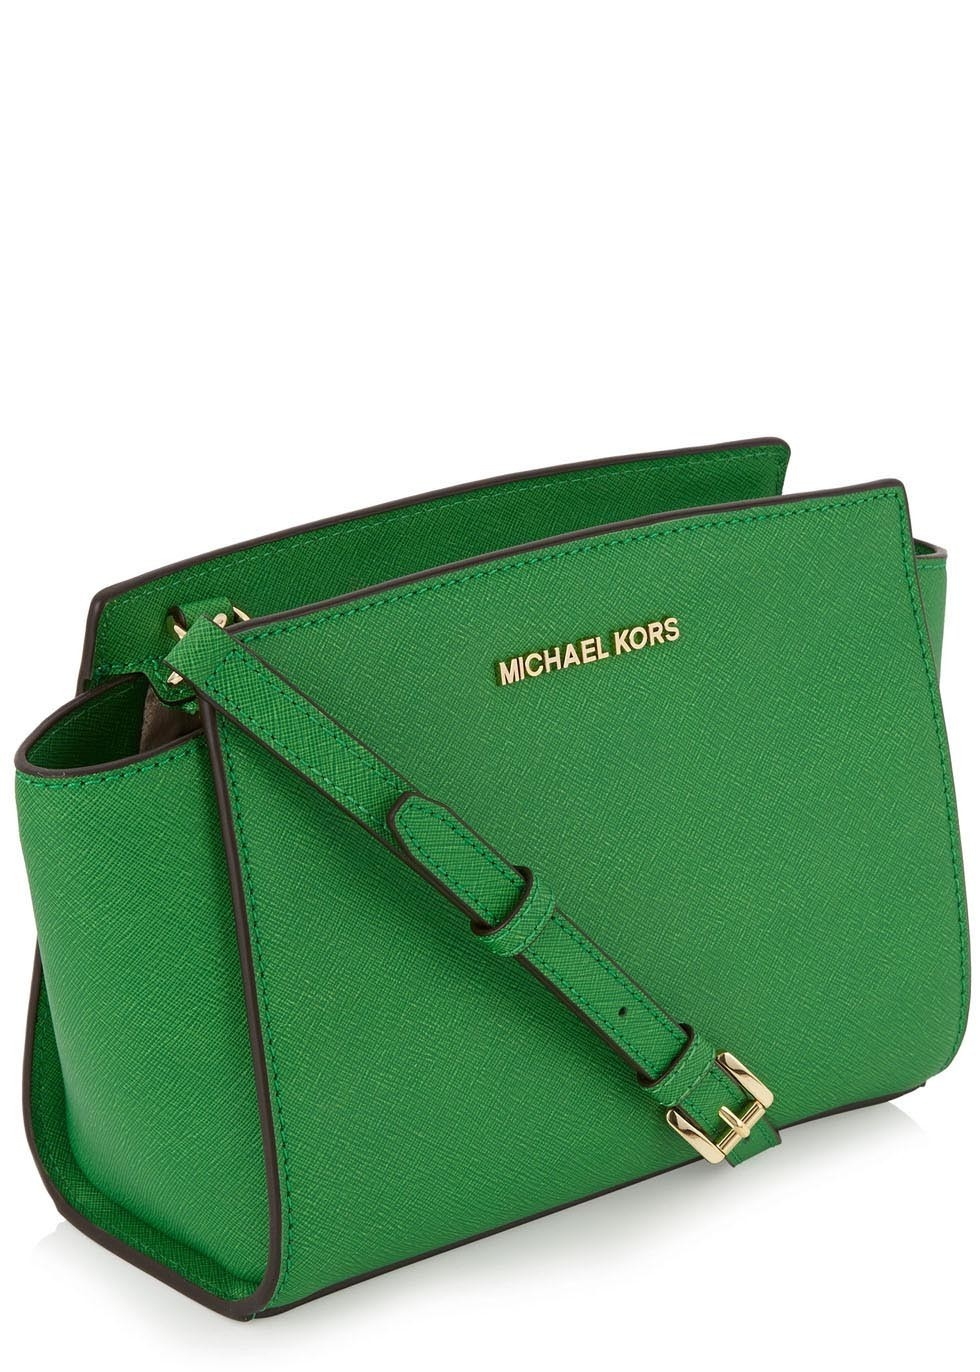 Cумка кроссбоди Michael Kors Selma Mini Messenger